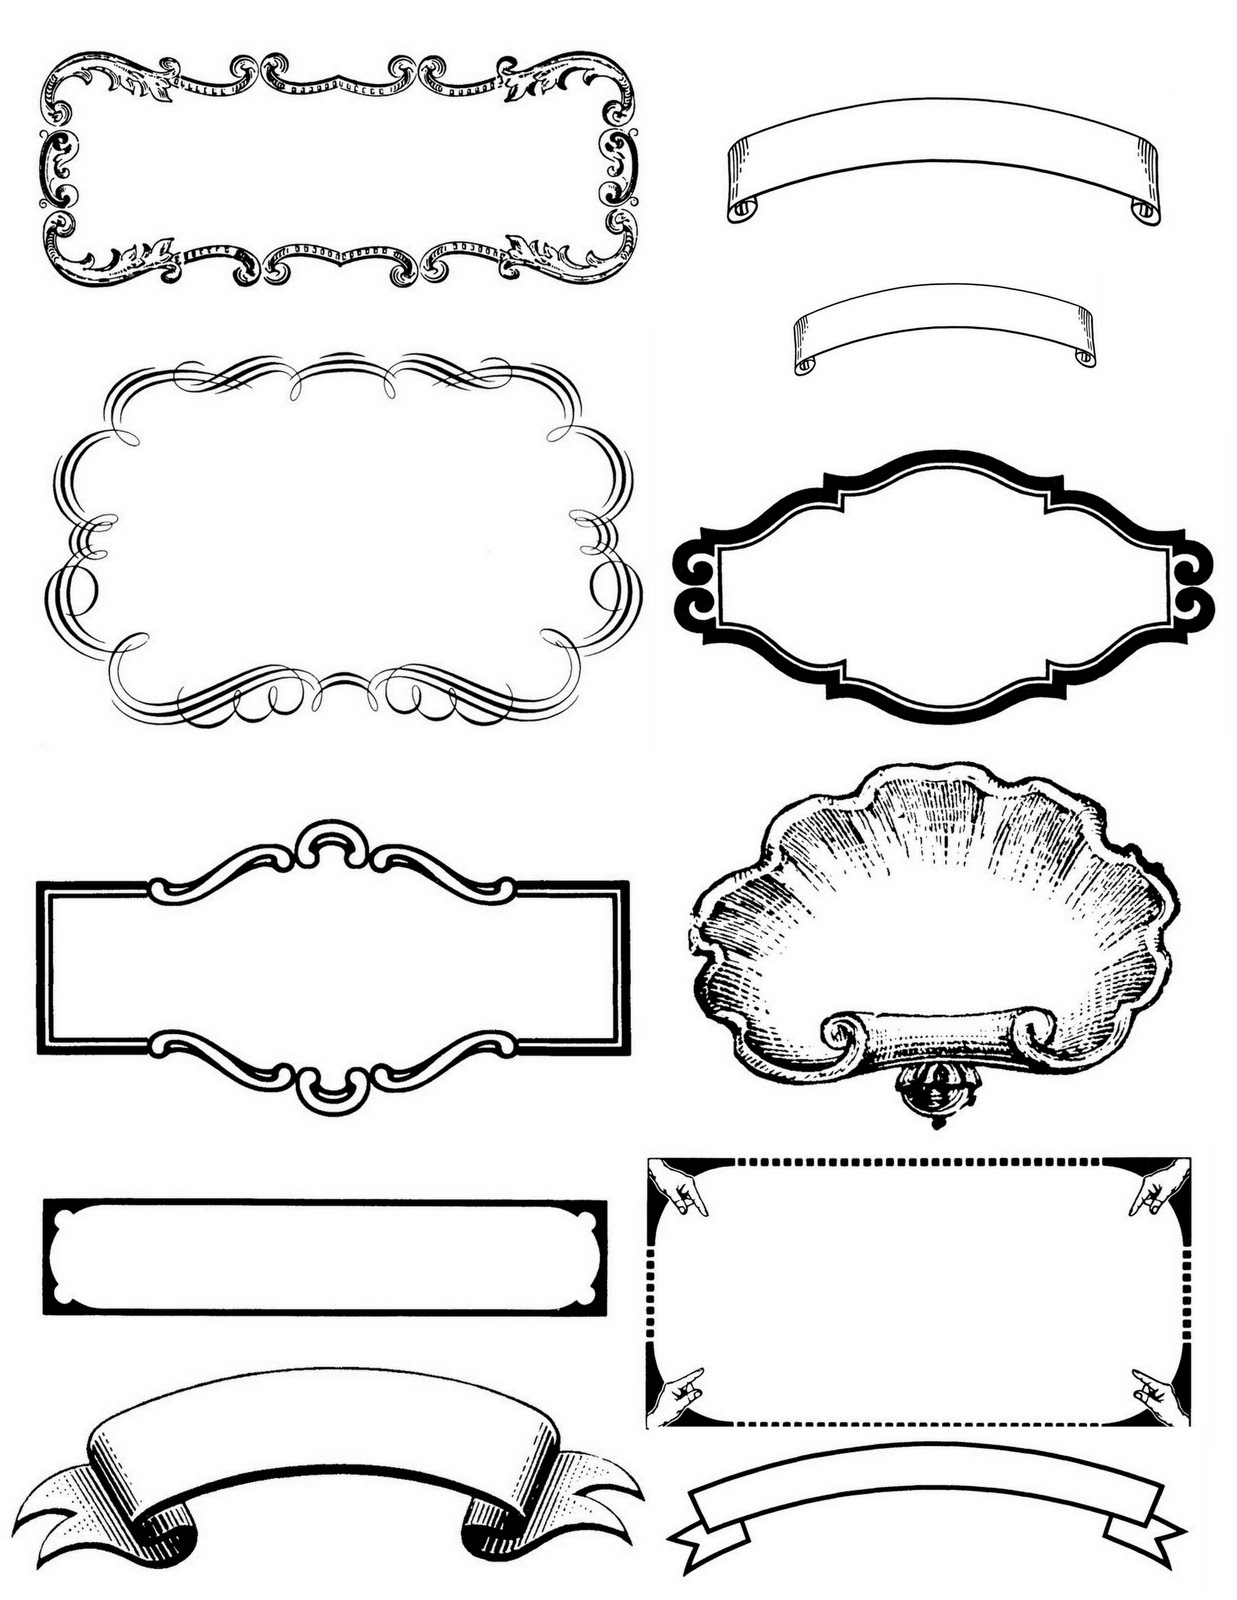 005 Free Printable Label Templates Template Ideas Album Imagenes - Free Printable Label Templates For Word